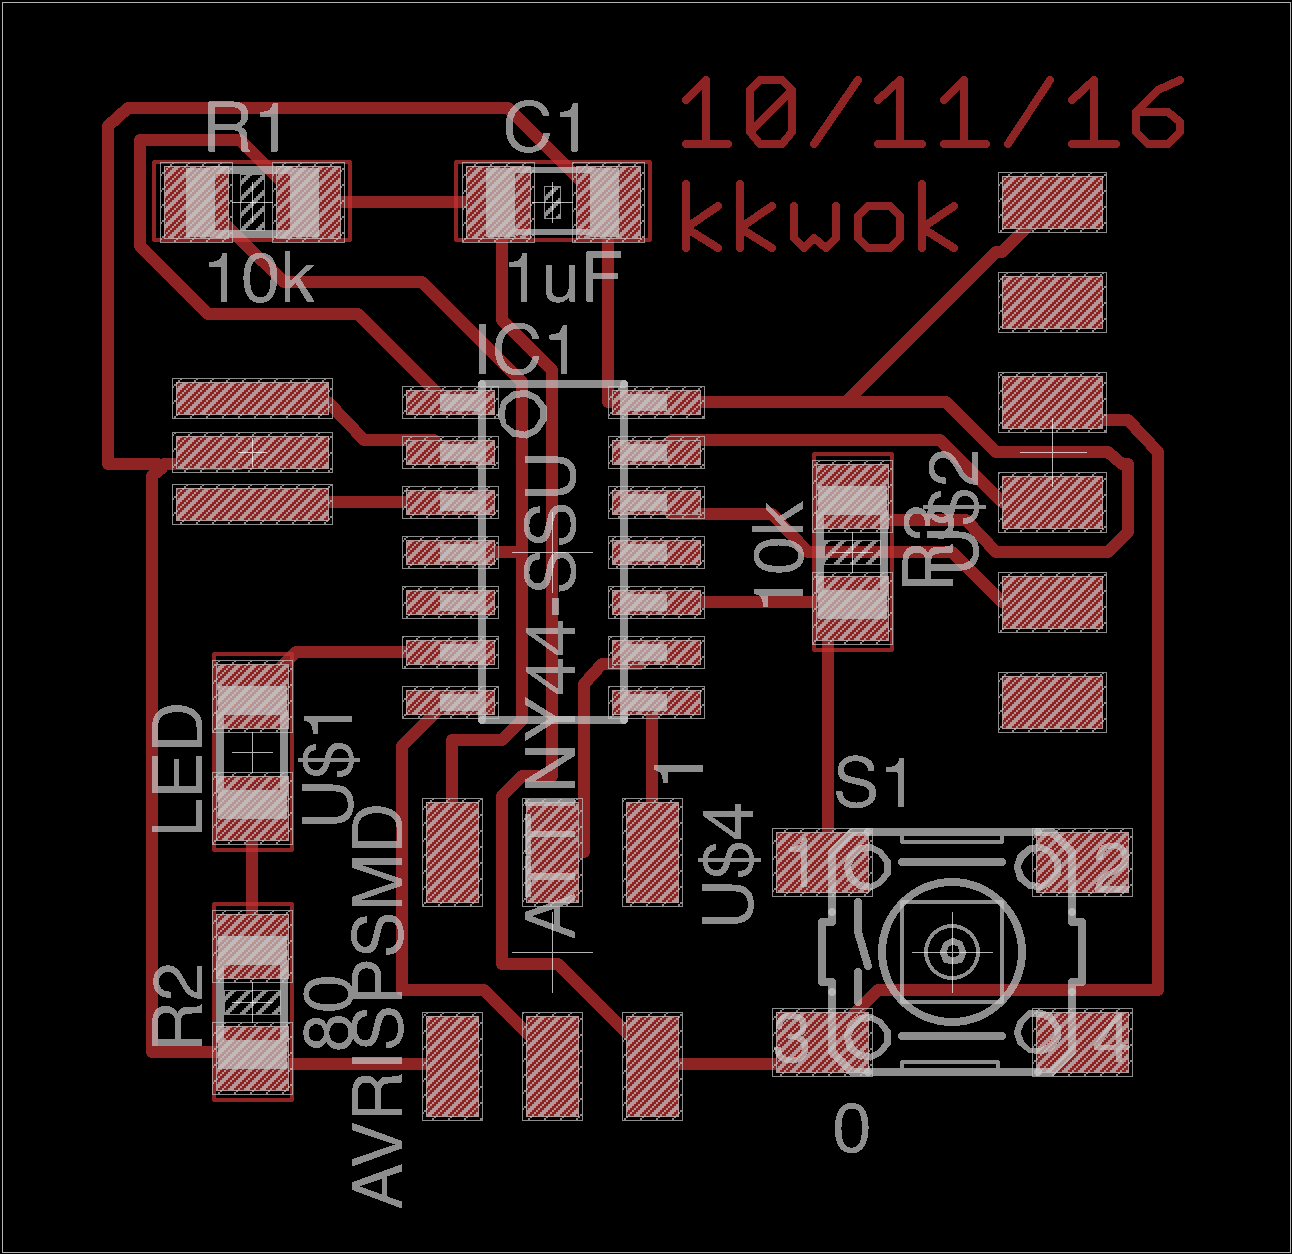 Kevin Kwok How To Build Your Own Power Supply Maxembedded I Hooked It Up The Fabispkey Programmer And One Of Ftdi Adapters Attempted Upload A Program With Provide Makefile